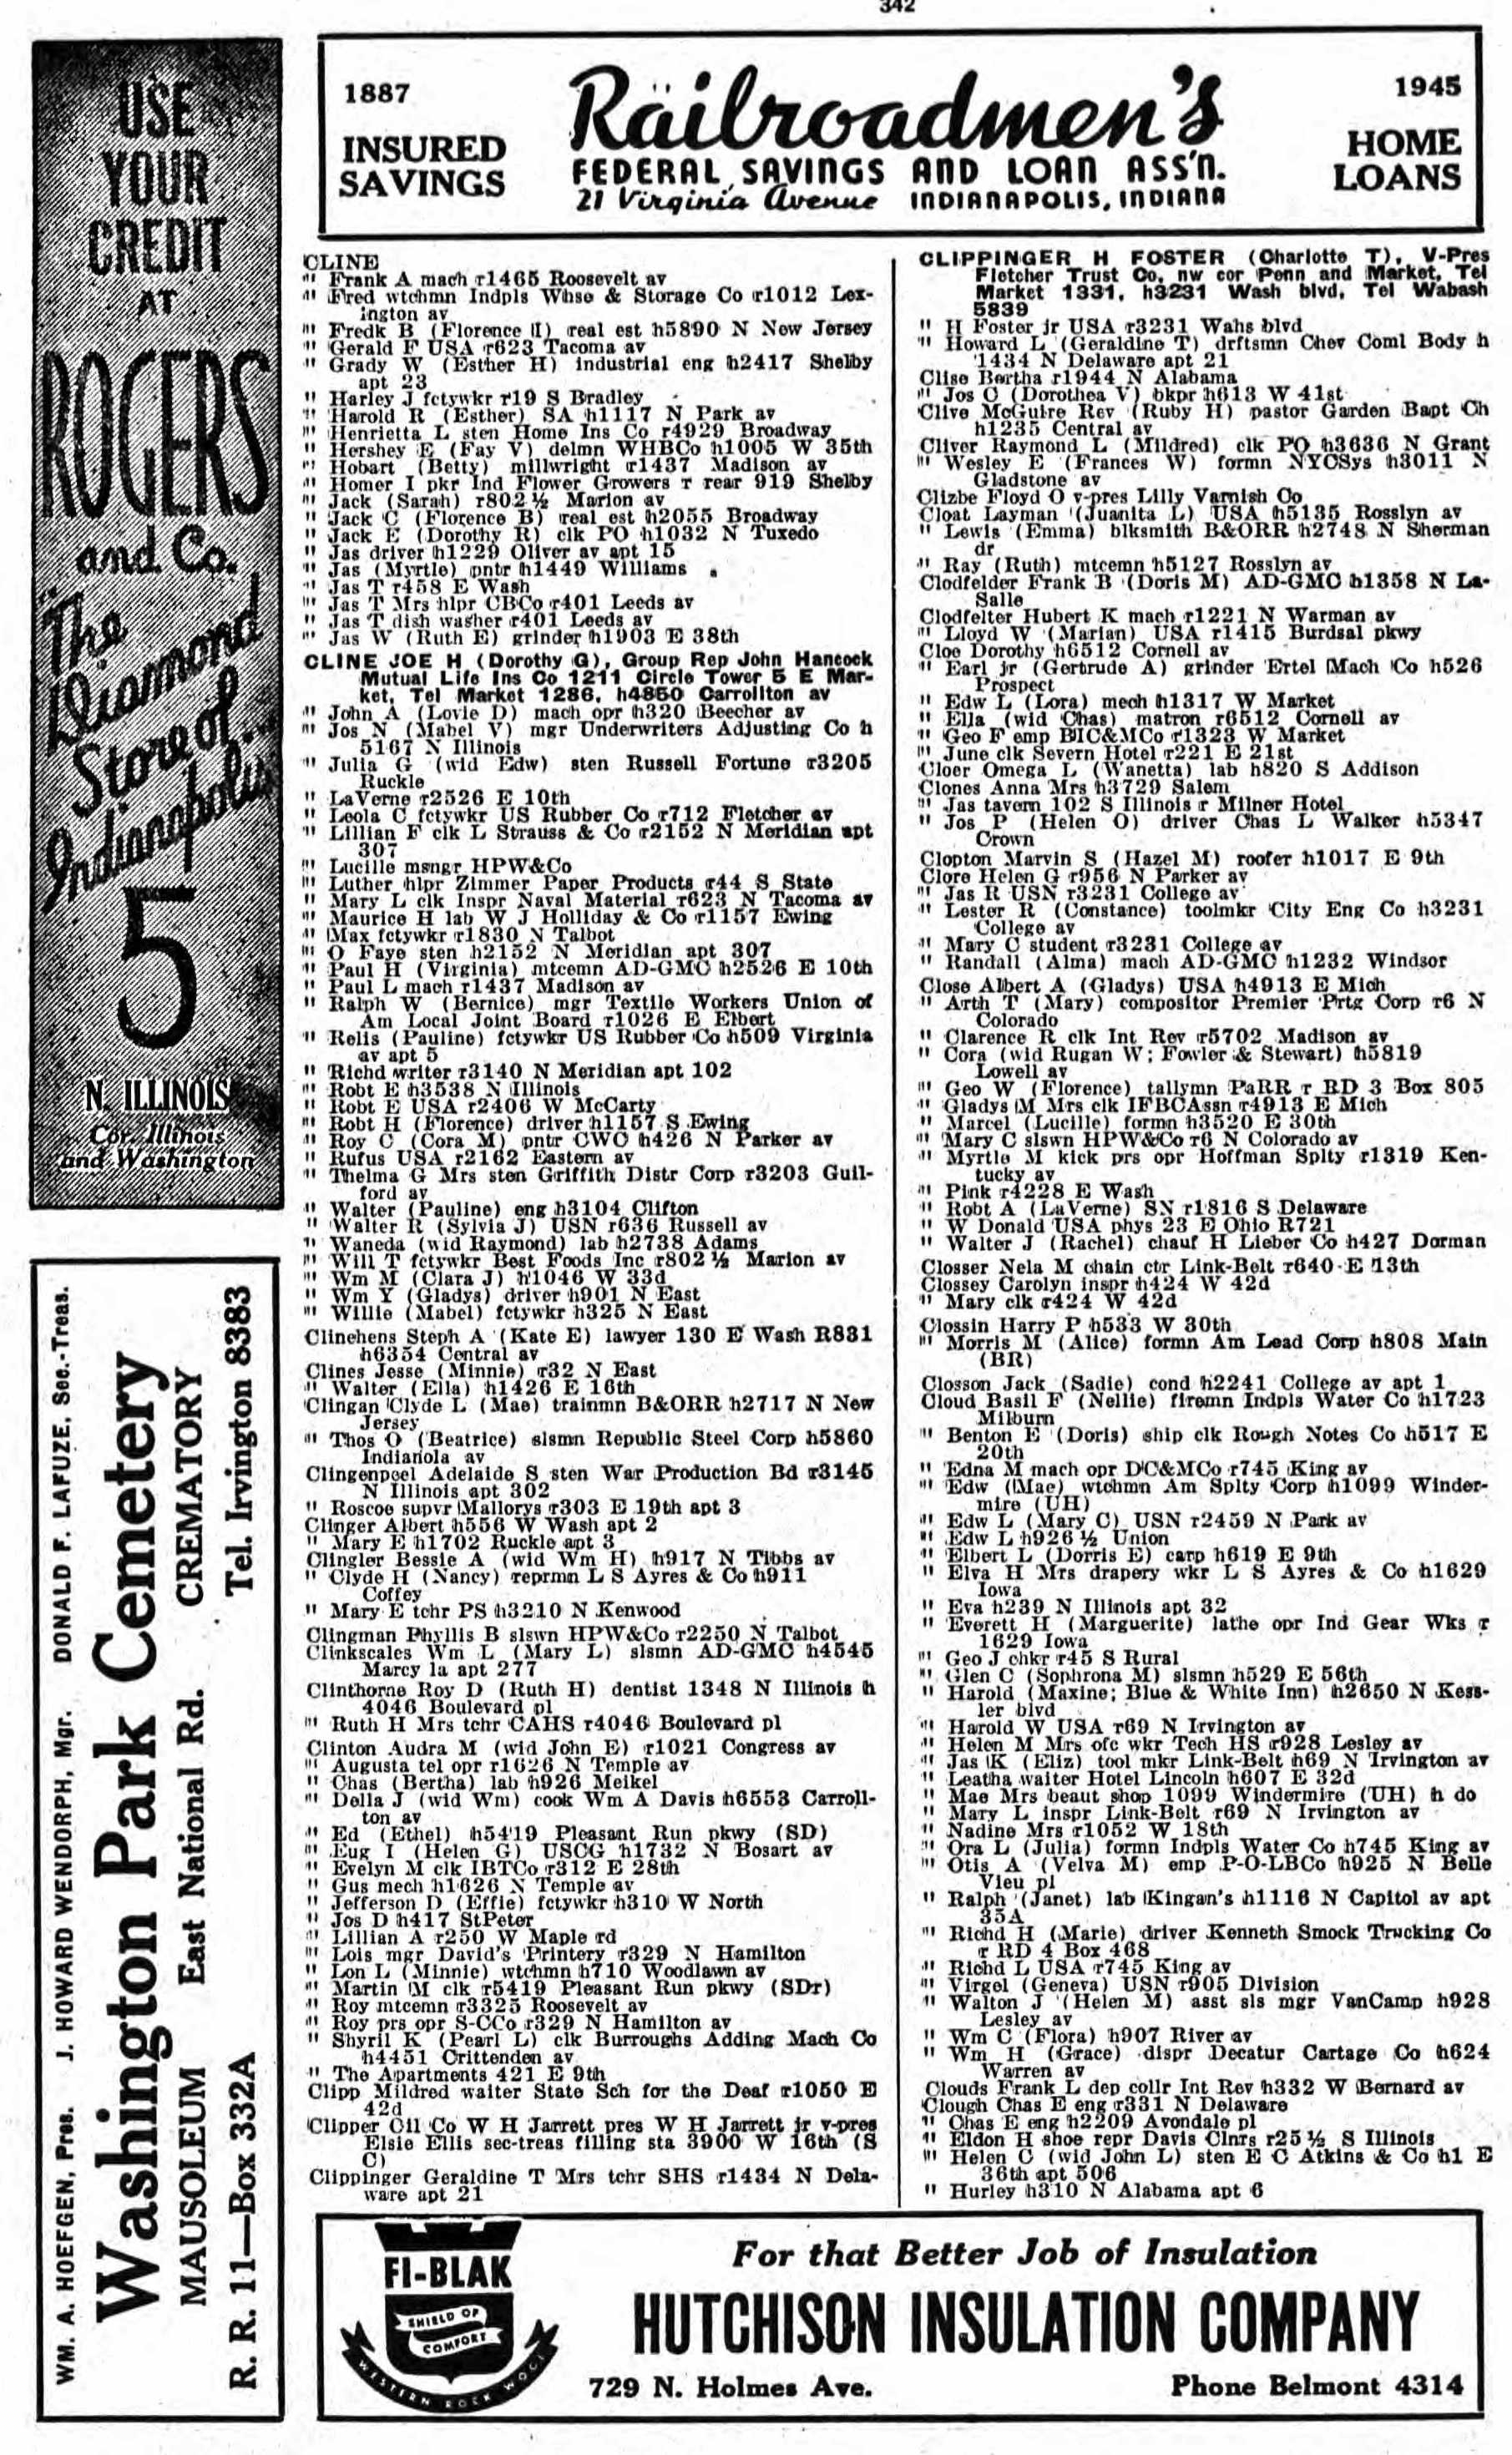 1945 City Directory